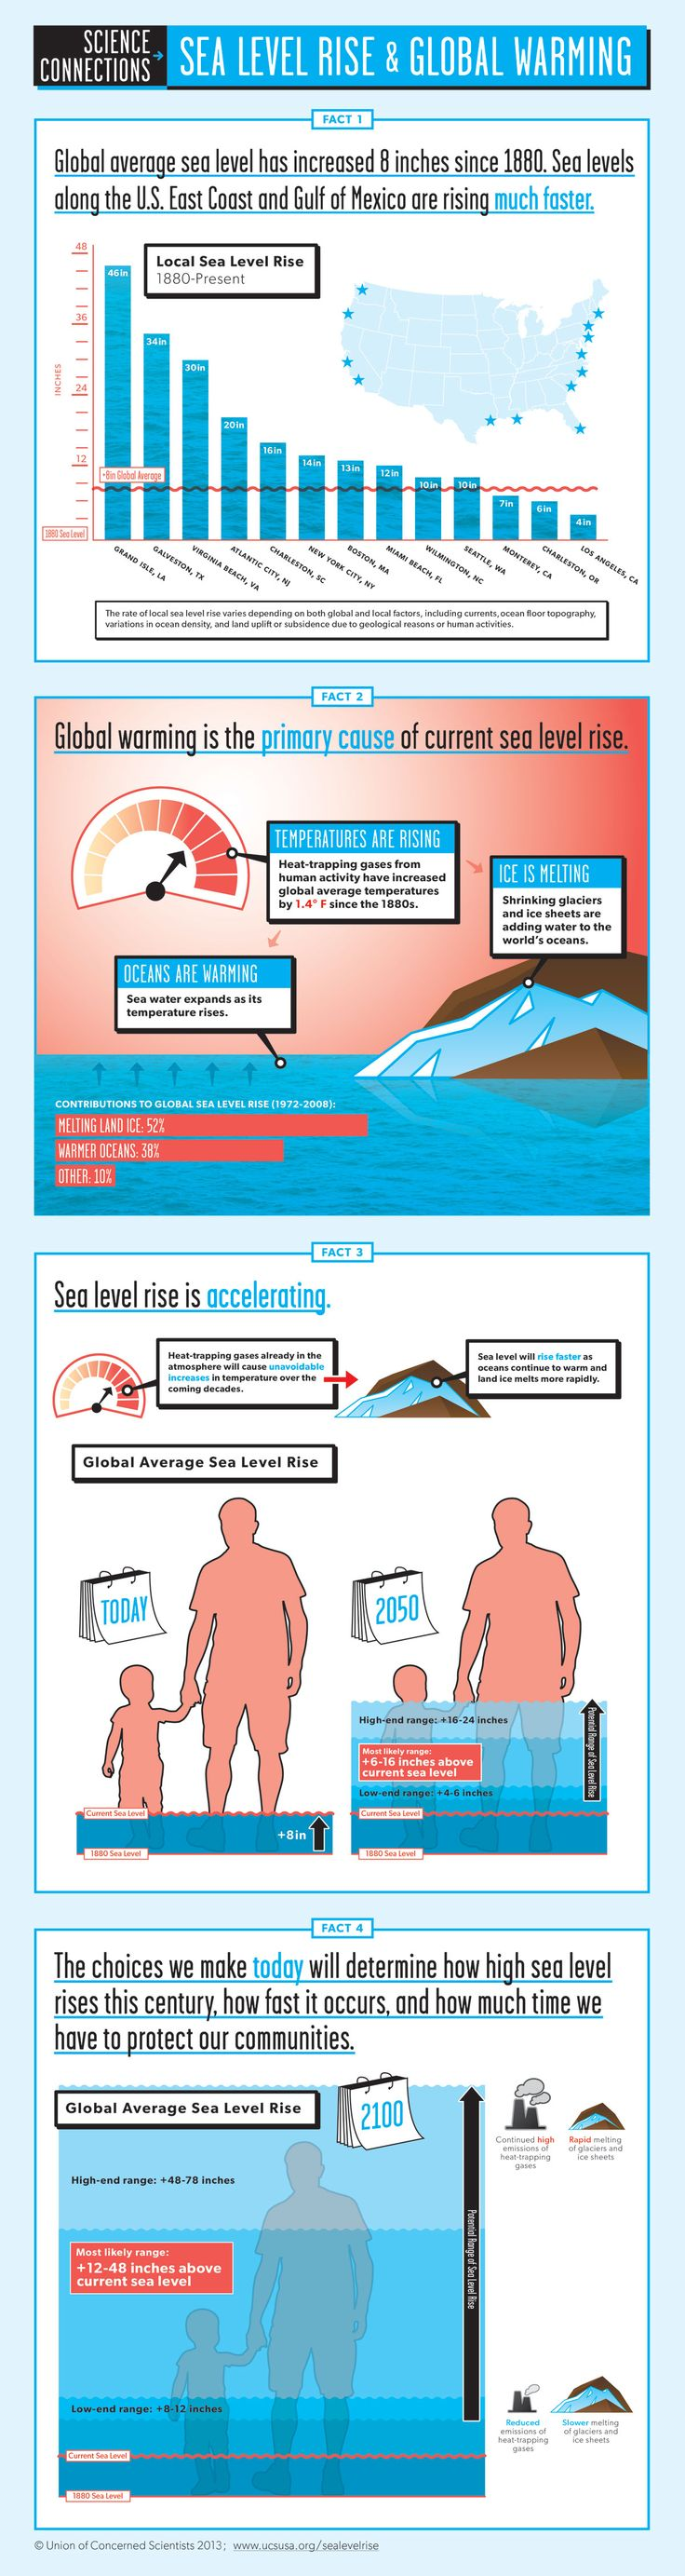 Infographic Sea Level Rise And Global Warming Union Of Concerned Scientists